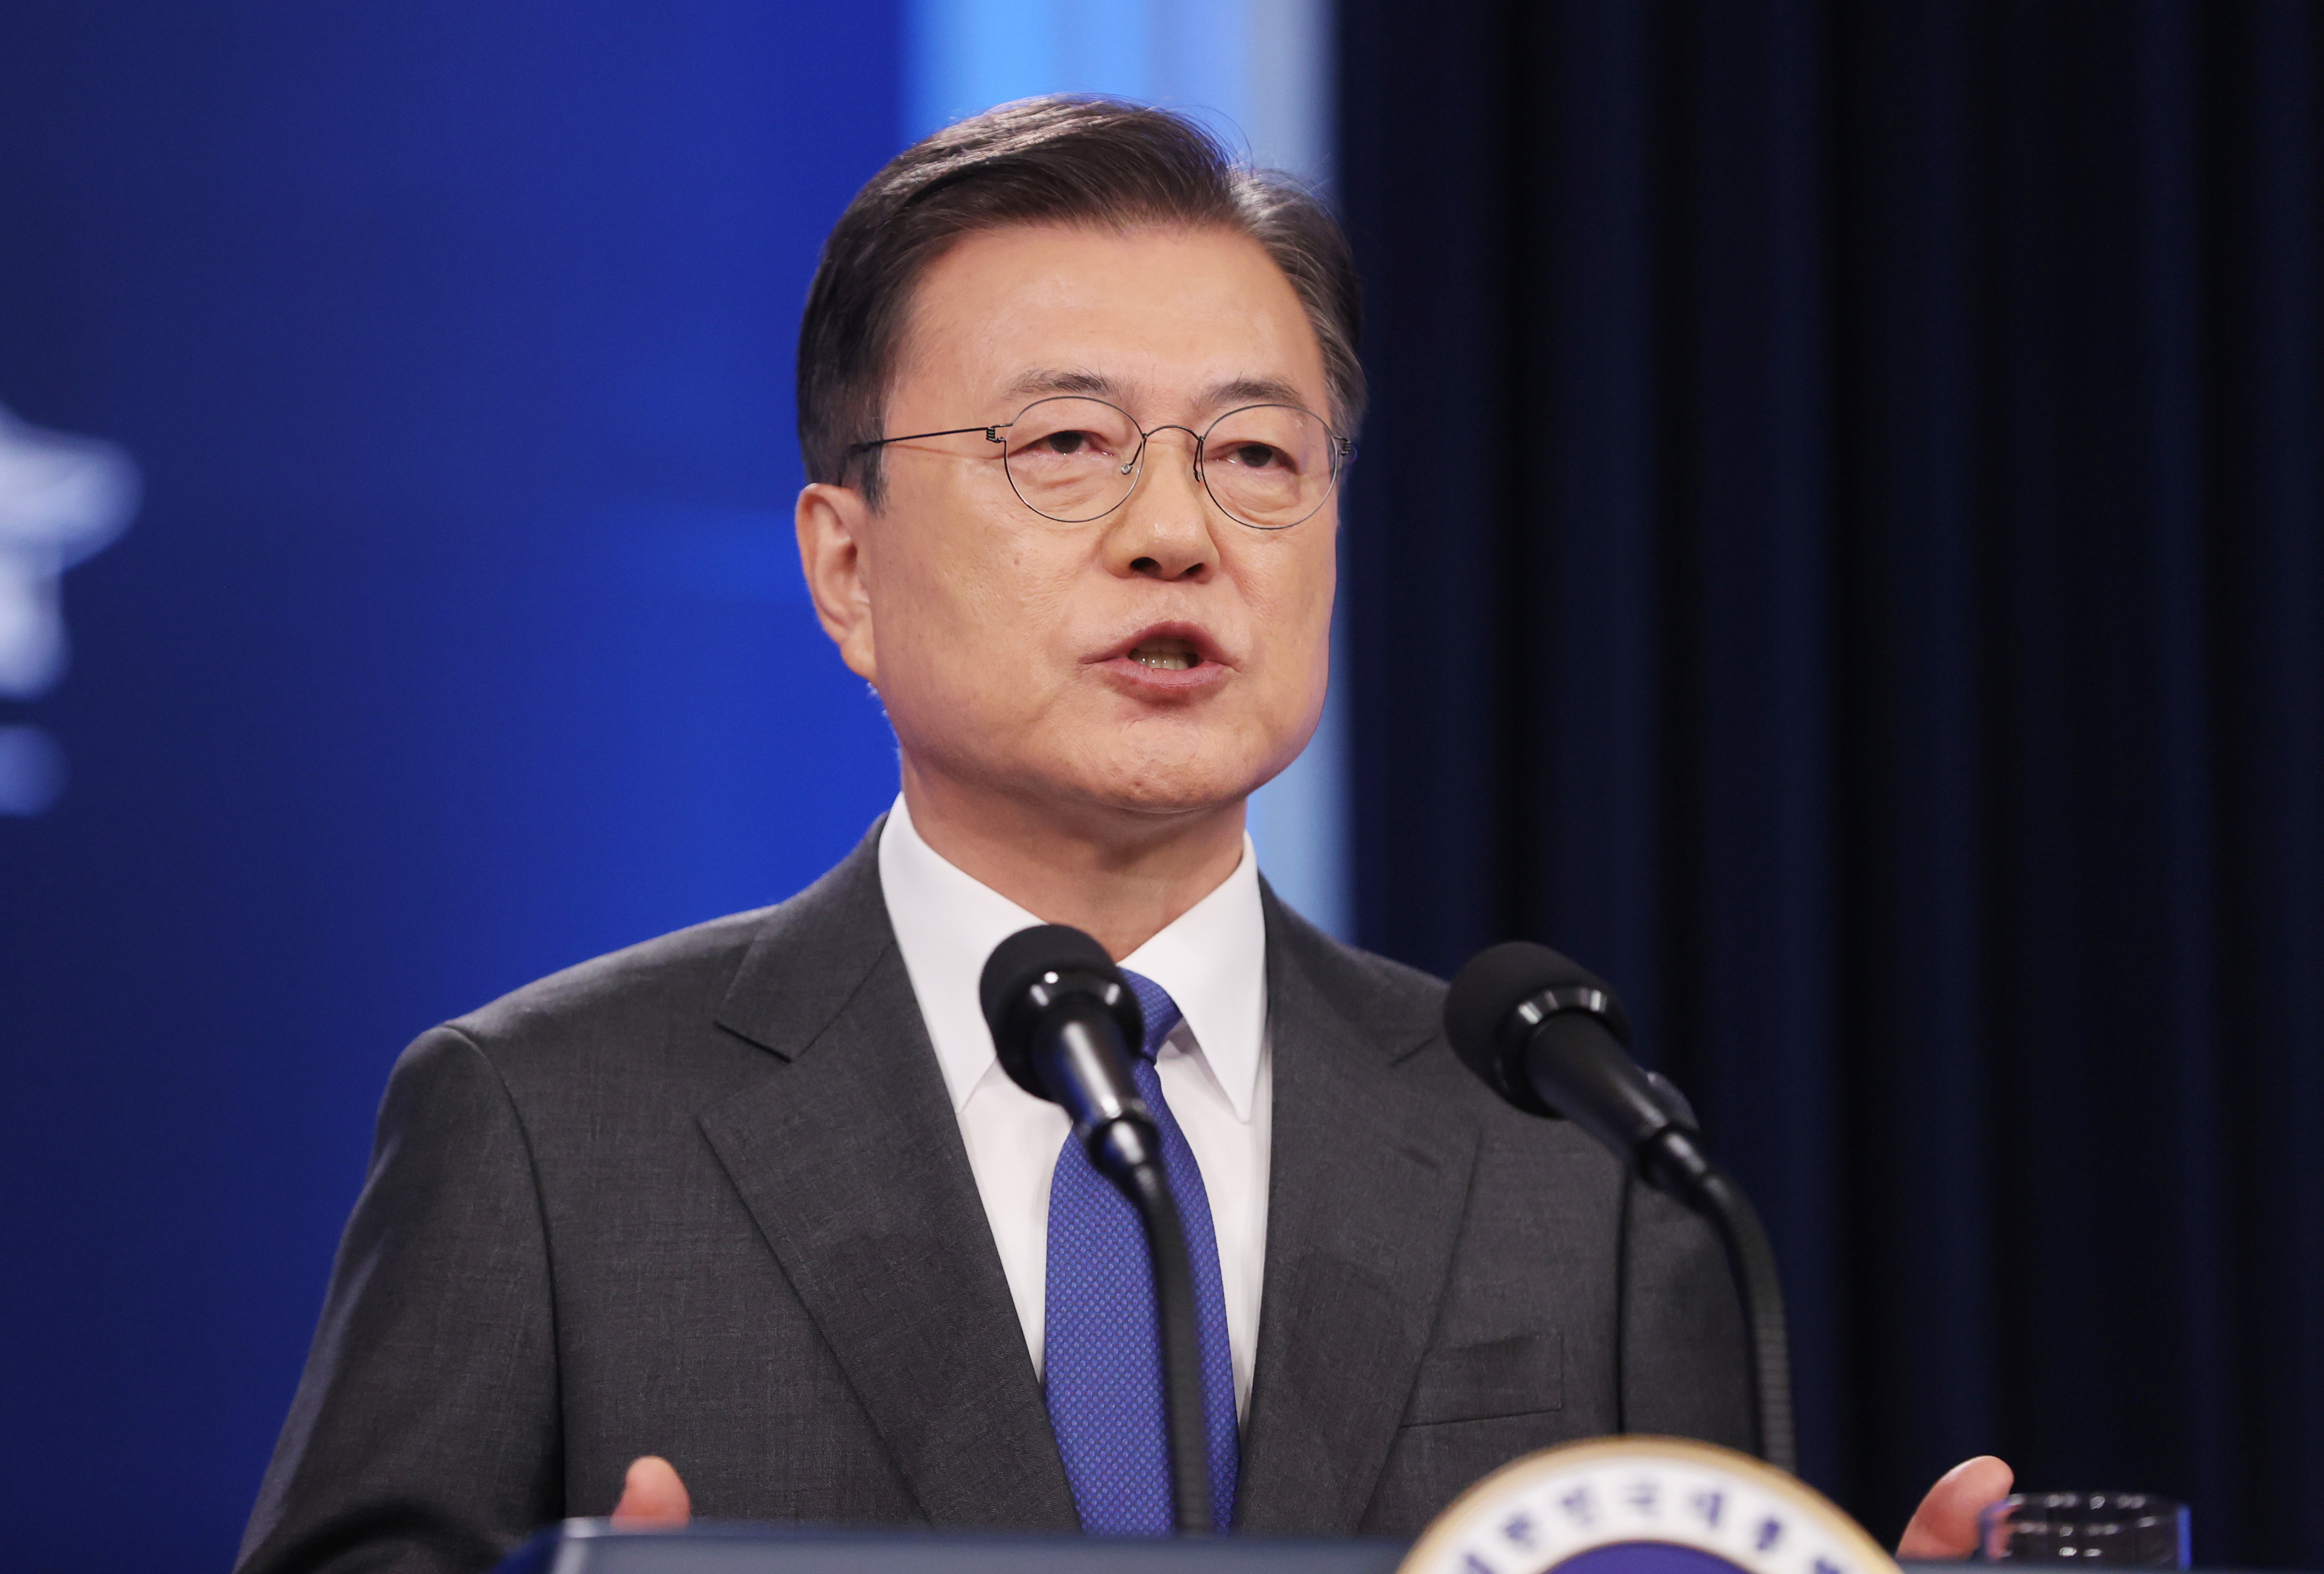 South Korean President Moon Jae-in delivers his speech during a news conference at the Presidential Blue House in Seoul, South Korea, May 10, 2021.    Yonhap via REUTERS